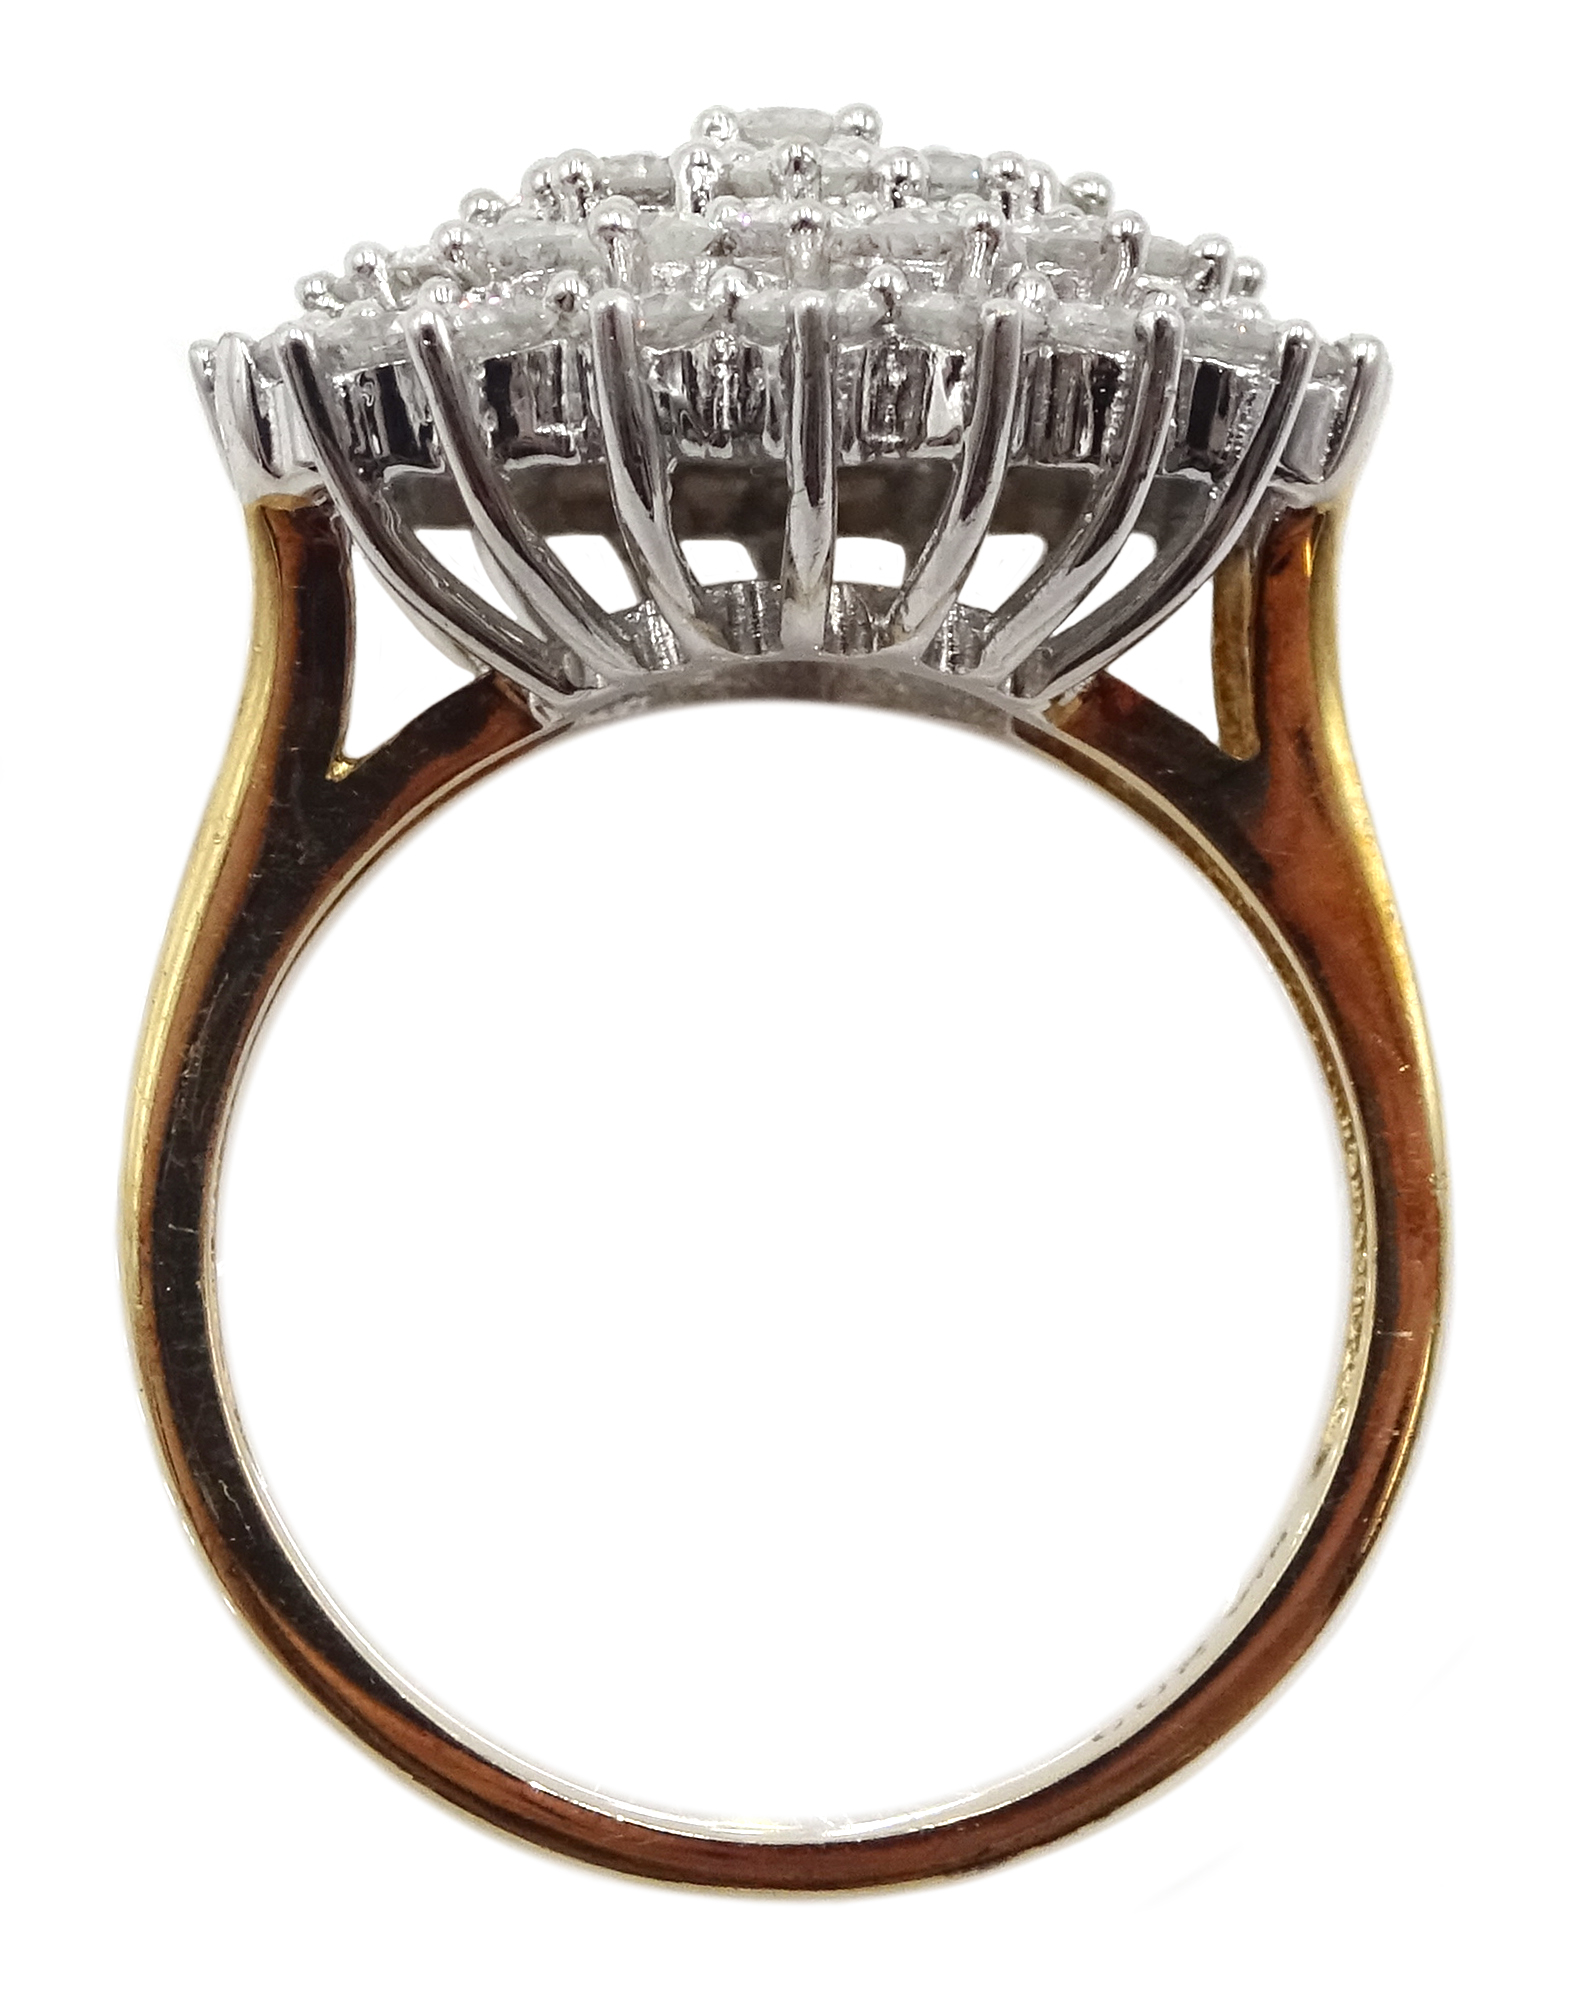 9ct gold cluster ring set with diamonds, diamond total weight approx 2.00 carat, free UK mainland - Image 5 of 6